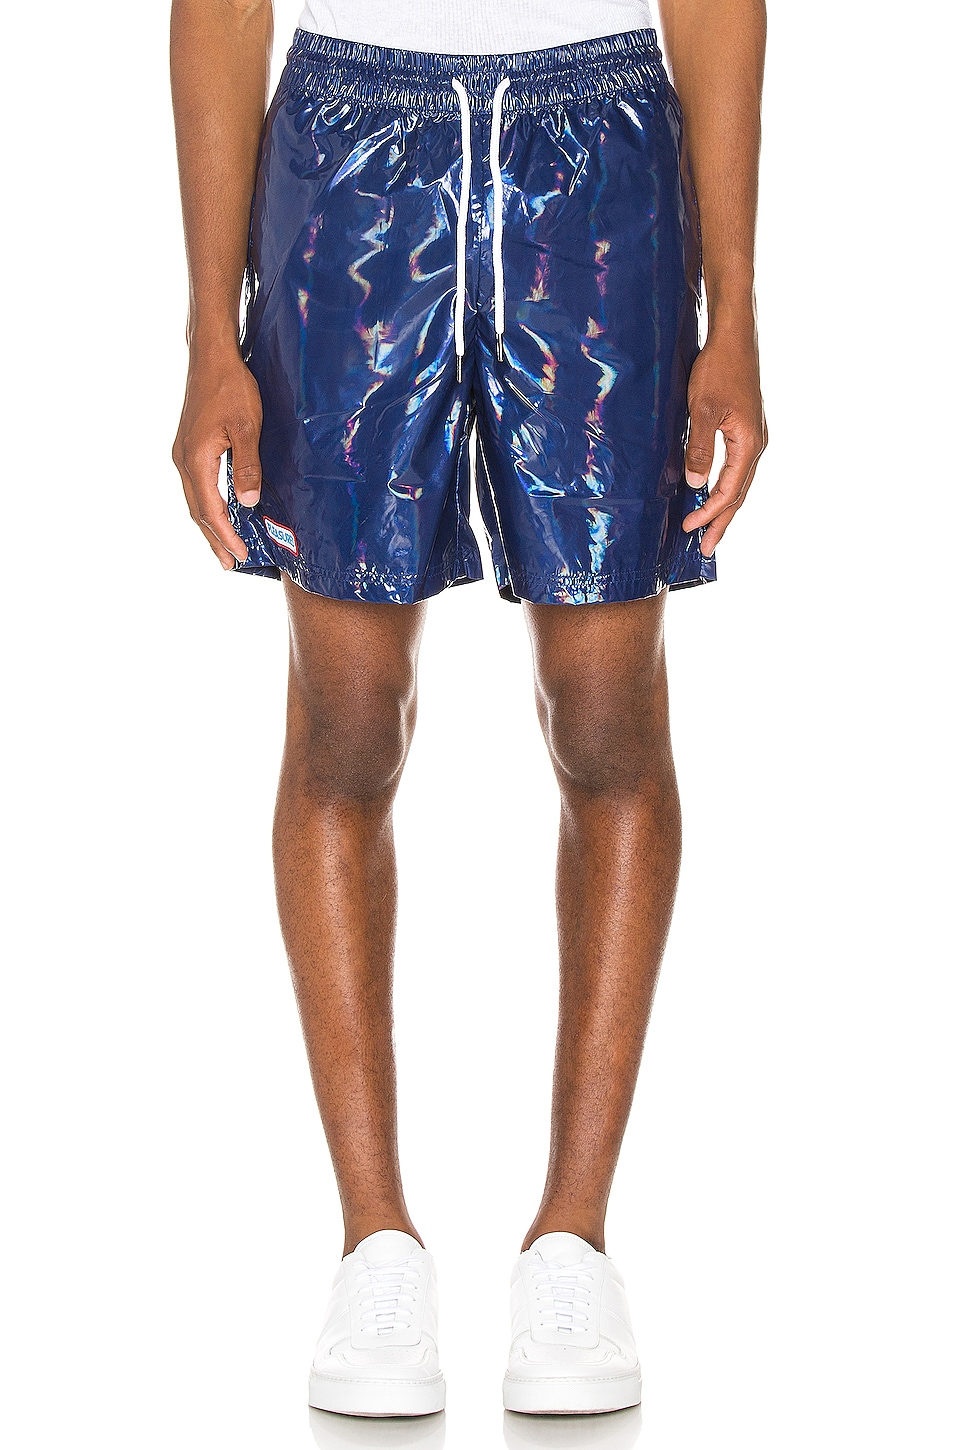 Pleasures Liquid Metallic Shorts in Navy